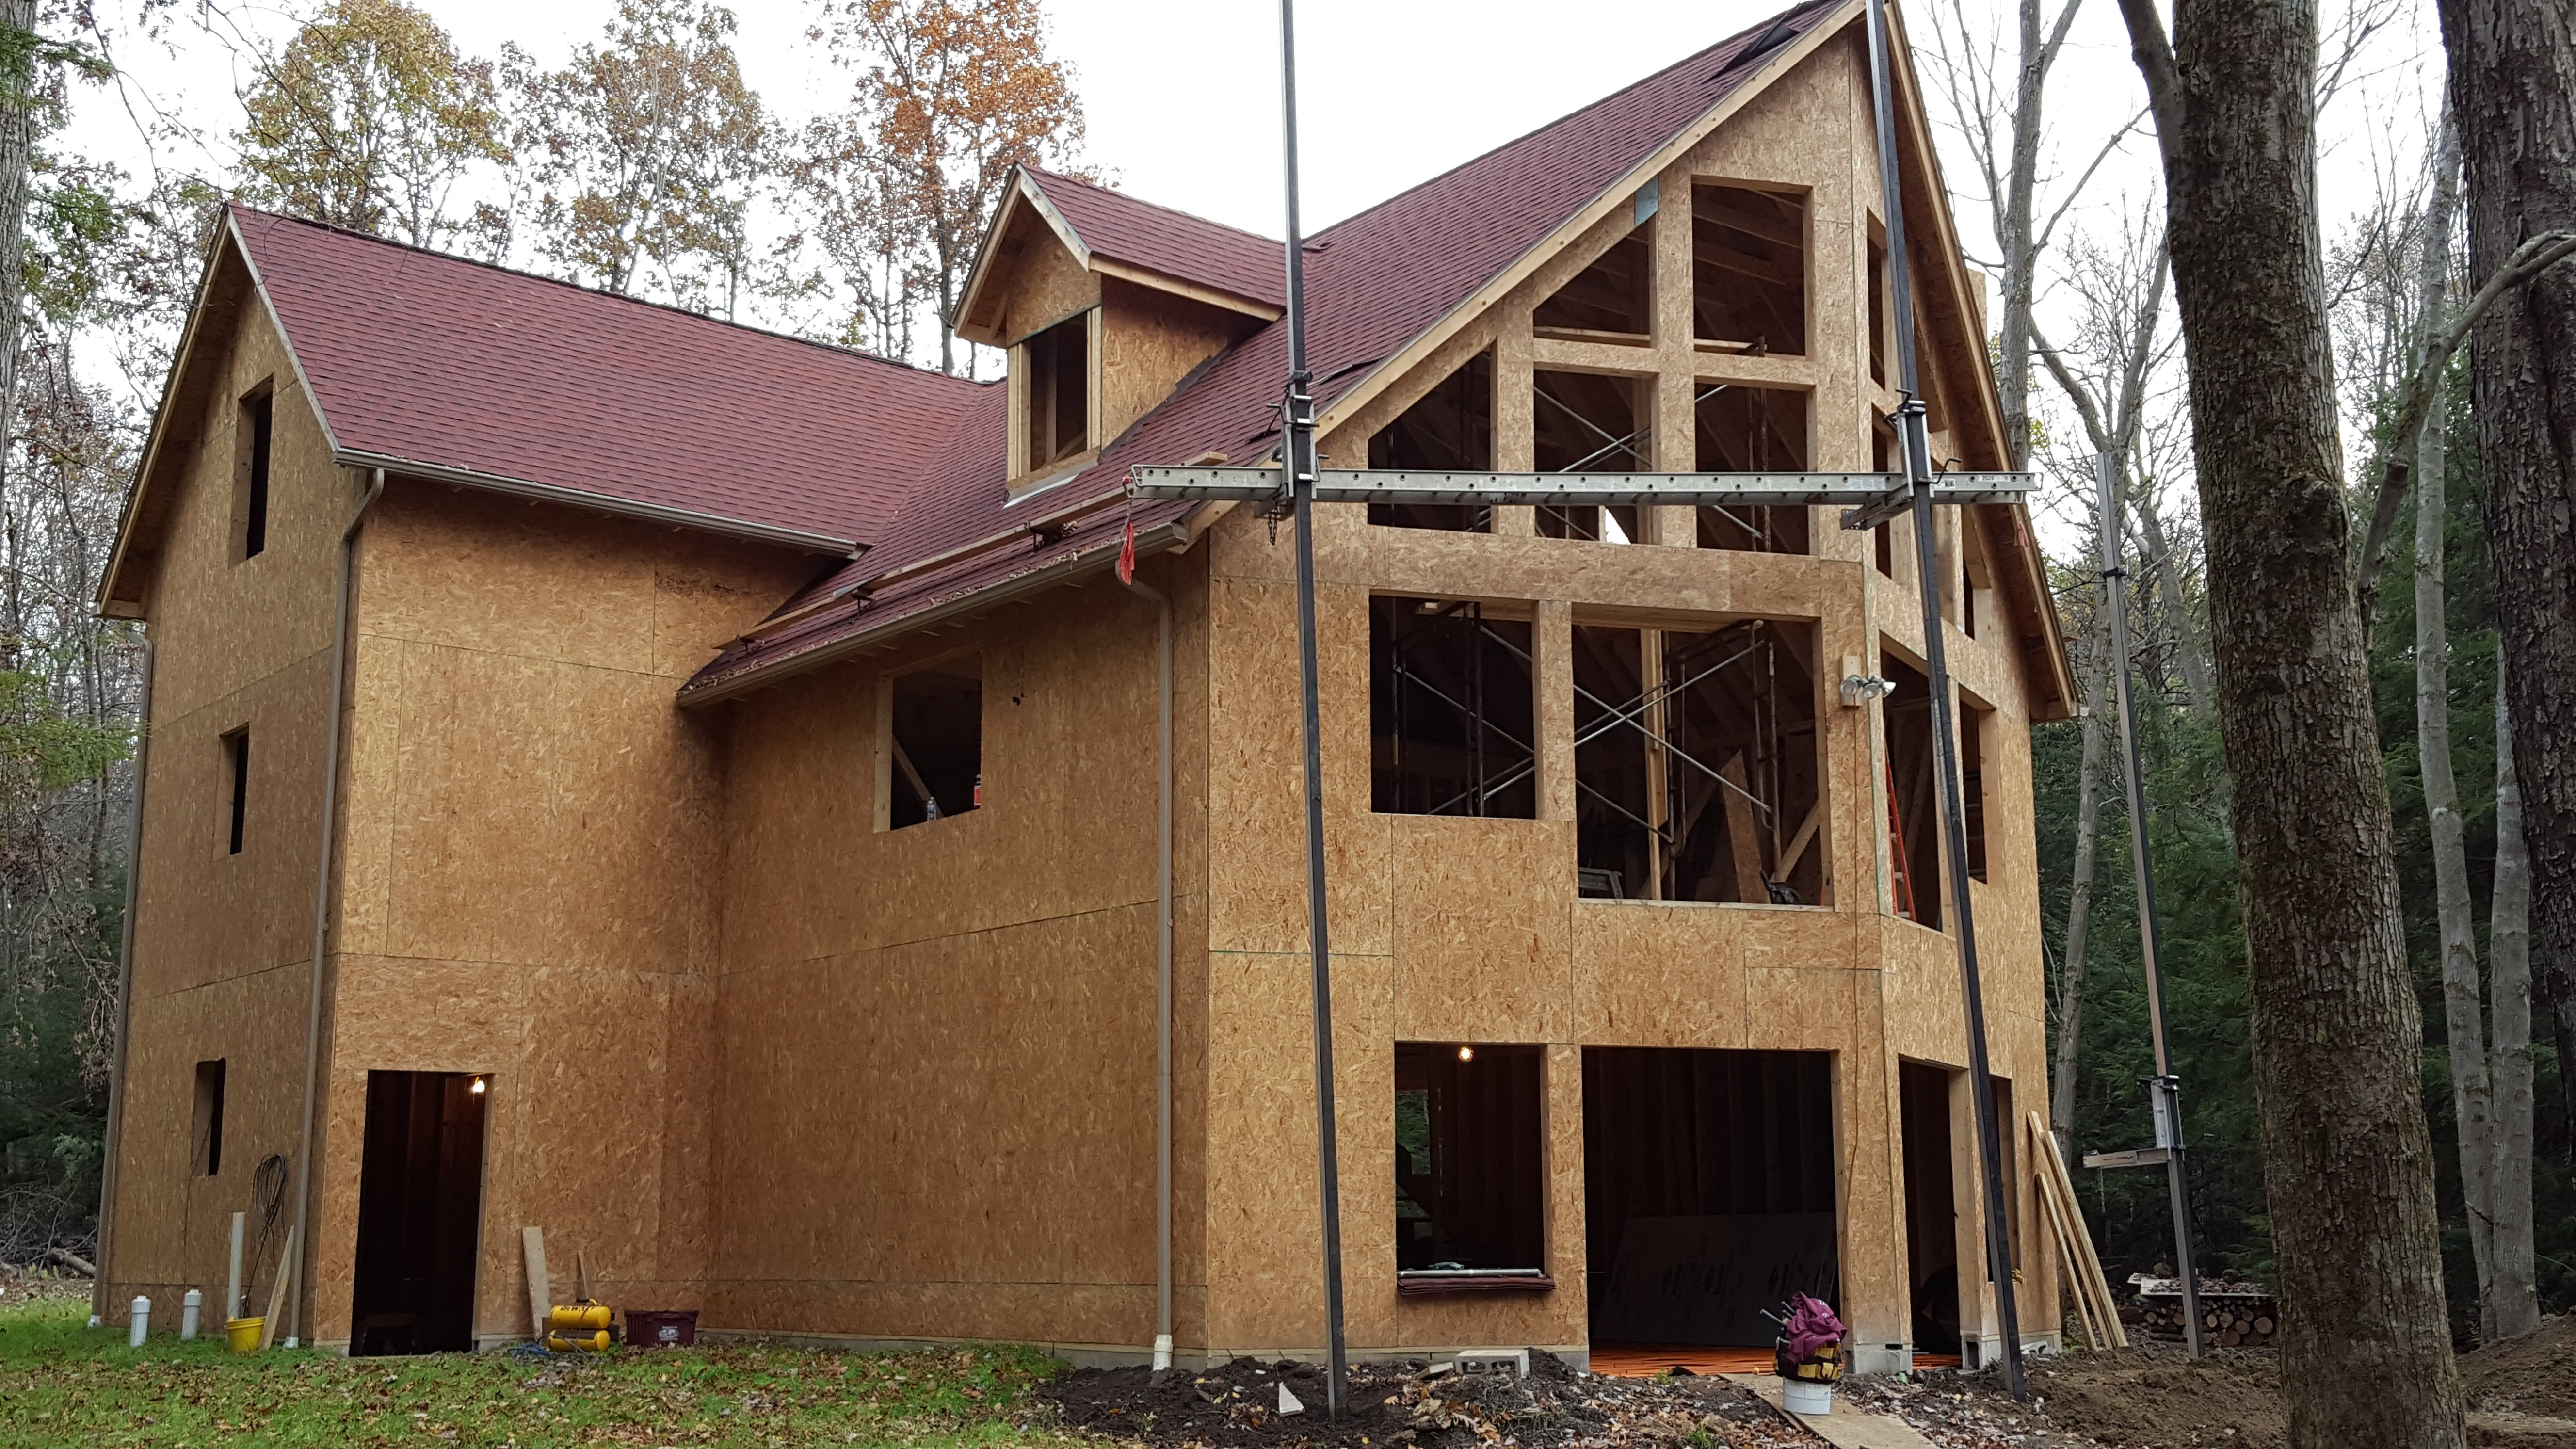 Local construction roofing remodeling contractors near for Local builders near me